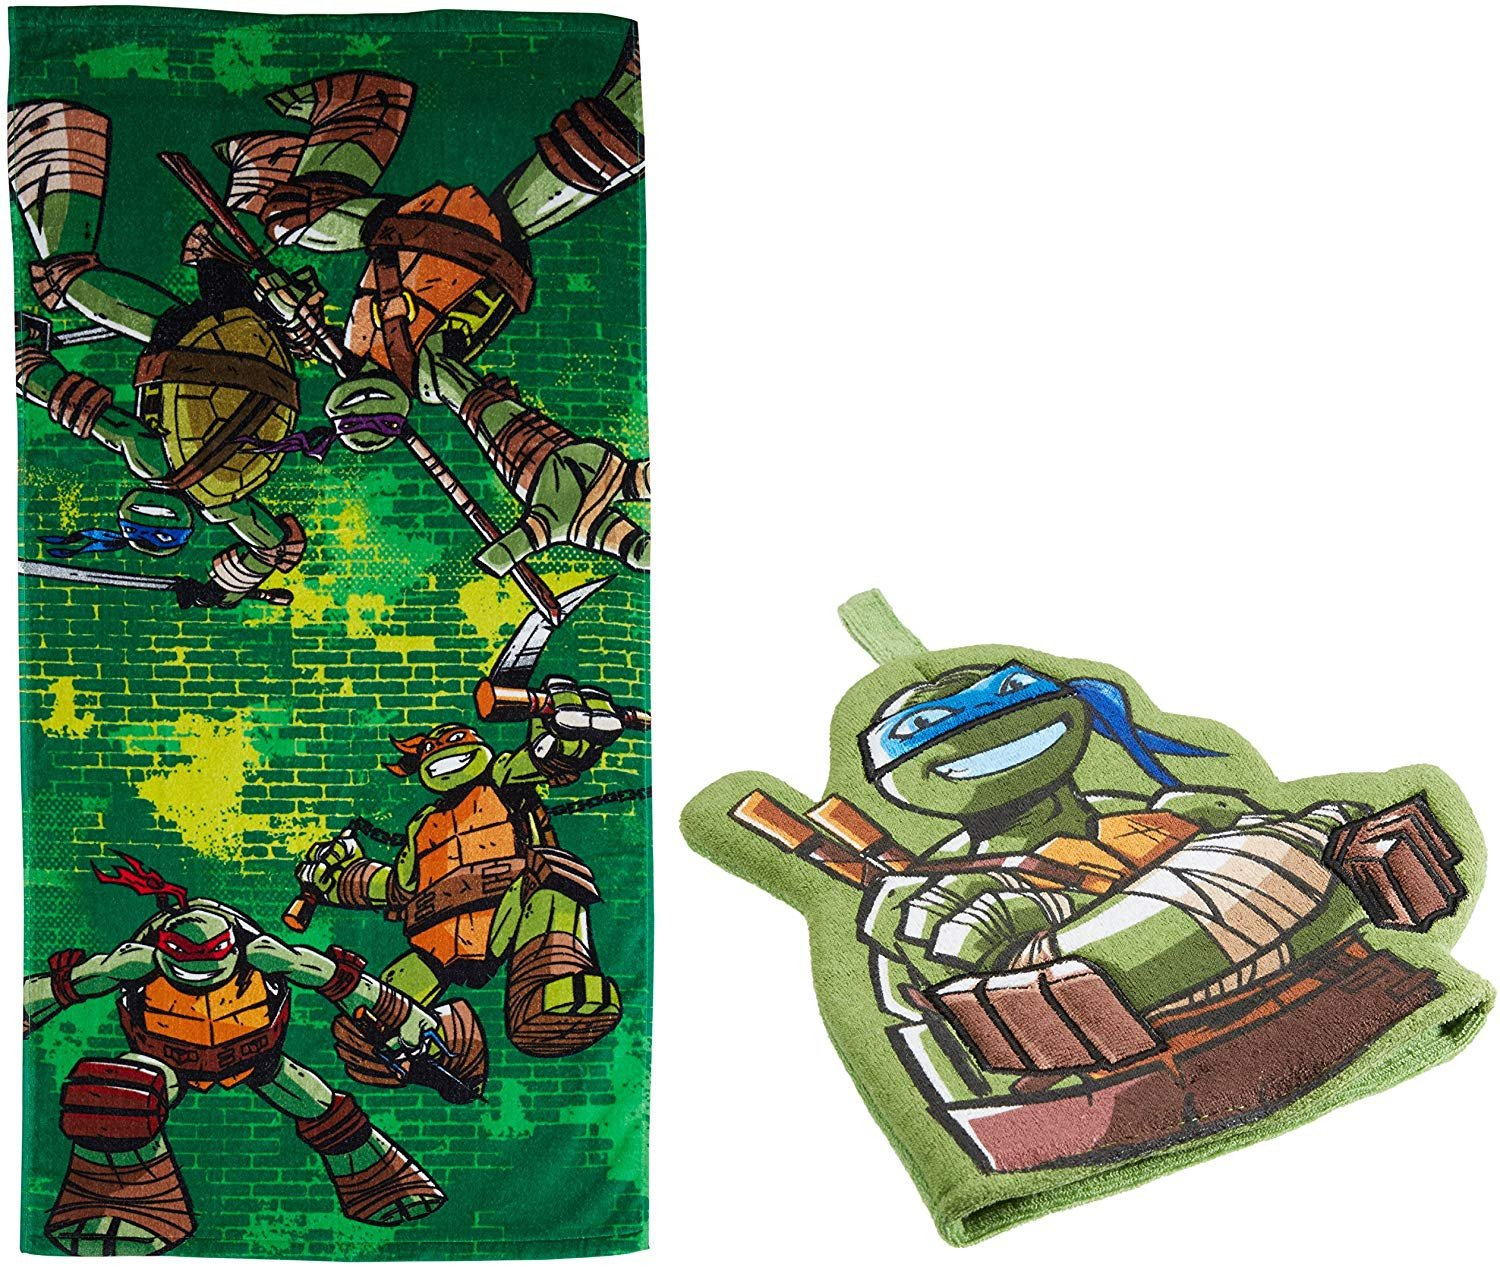 Ninja Turtle Bedroom Set Unique Nickelodeon Teenage Mutant Ninja Turtles 2 Piece Bath towel and Bath Mitt Set